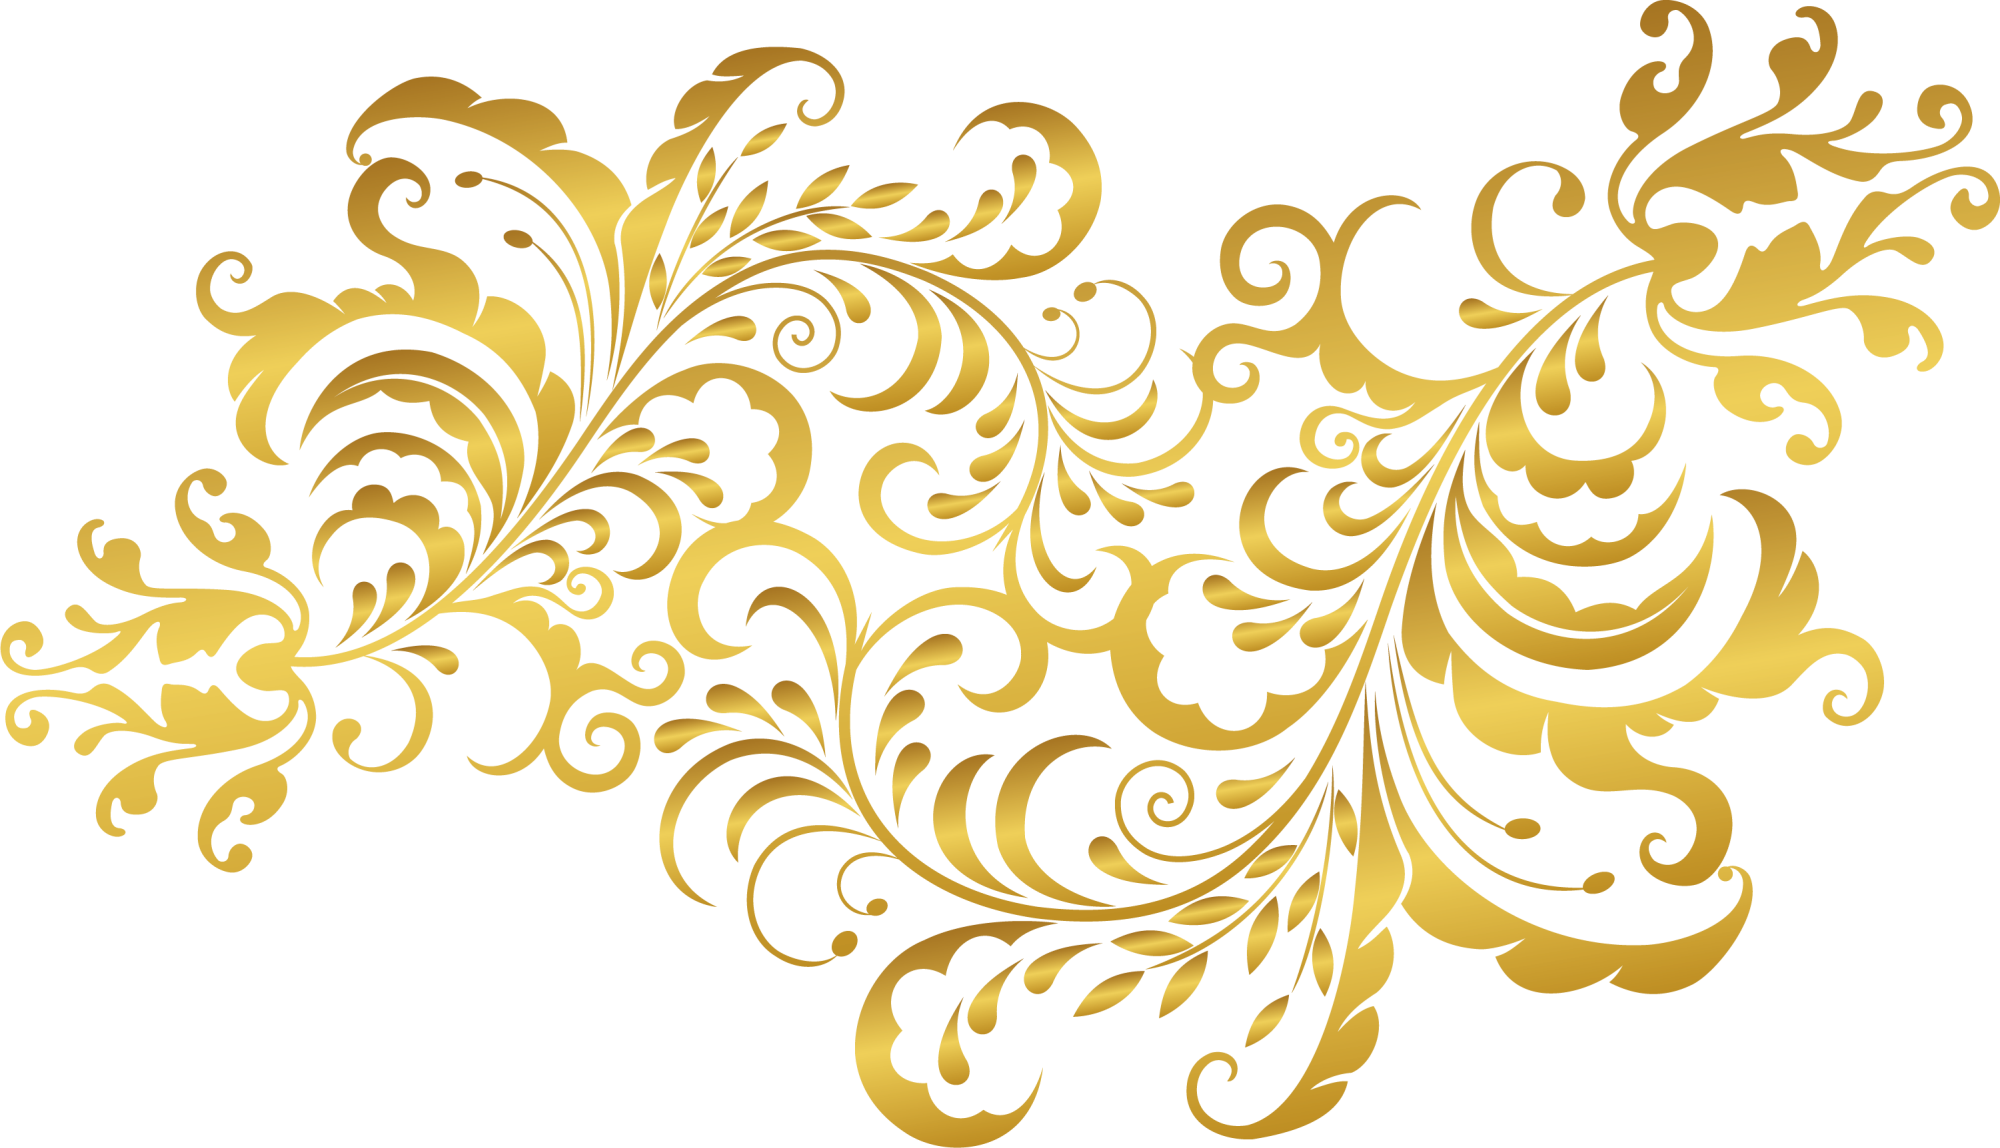 Golden plants transprent free. Gold flower png